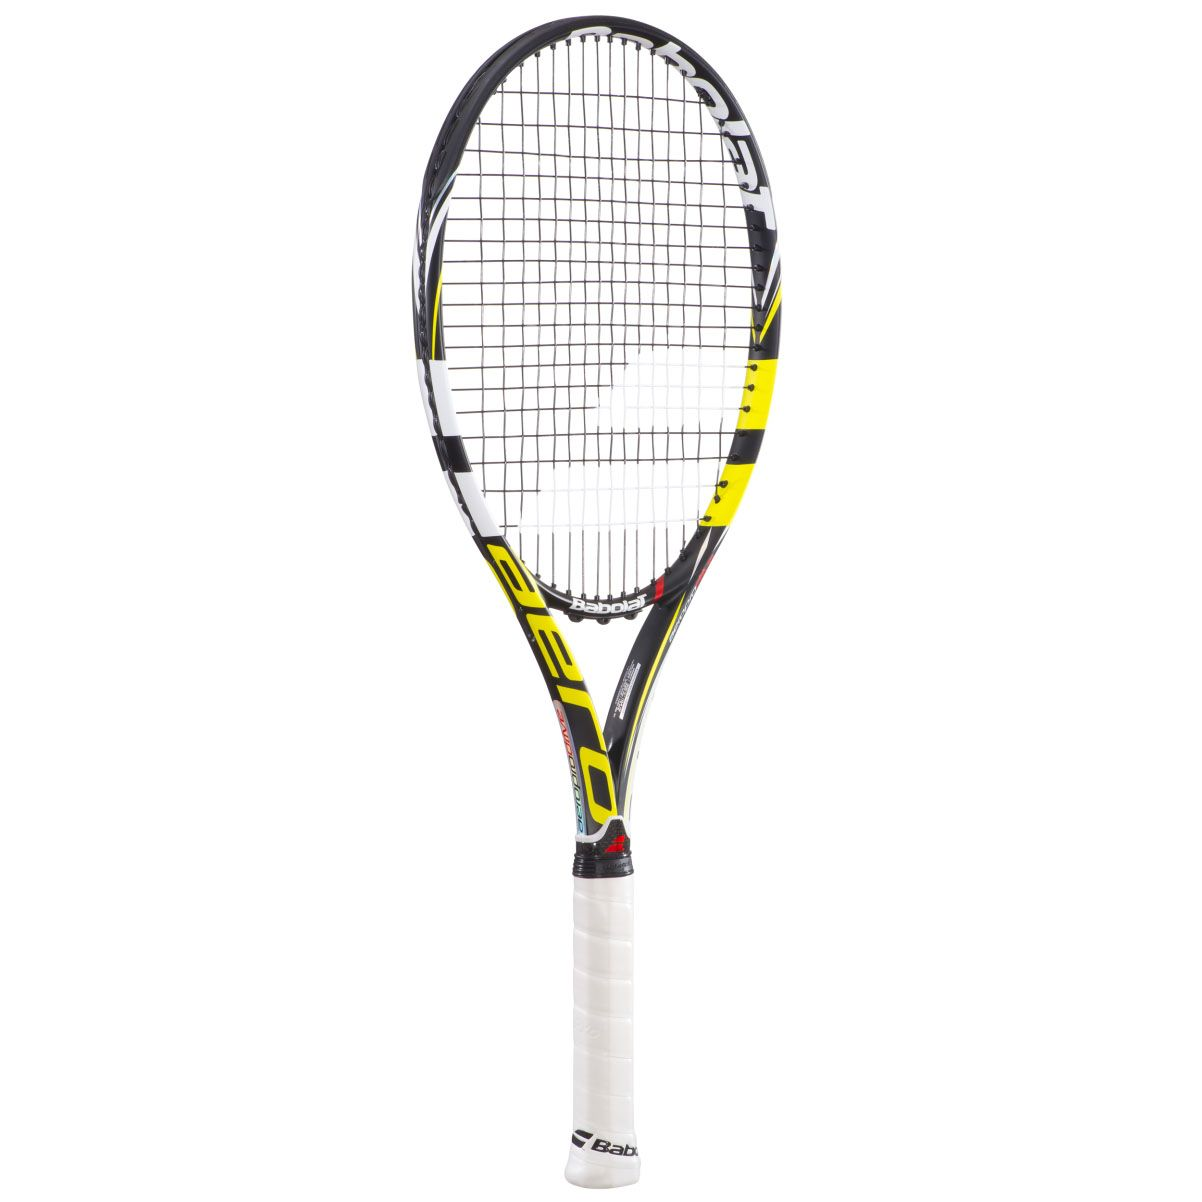 babolat aeropro drive gt tennis racket. Black Bedroom Furniture Sets. Home Design Ideas